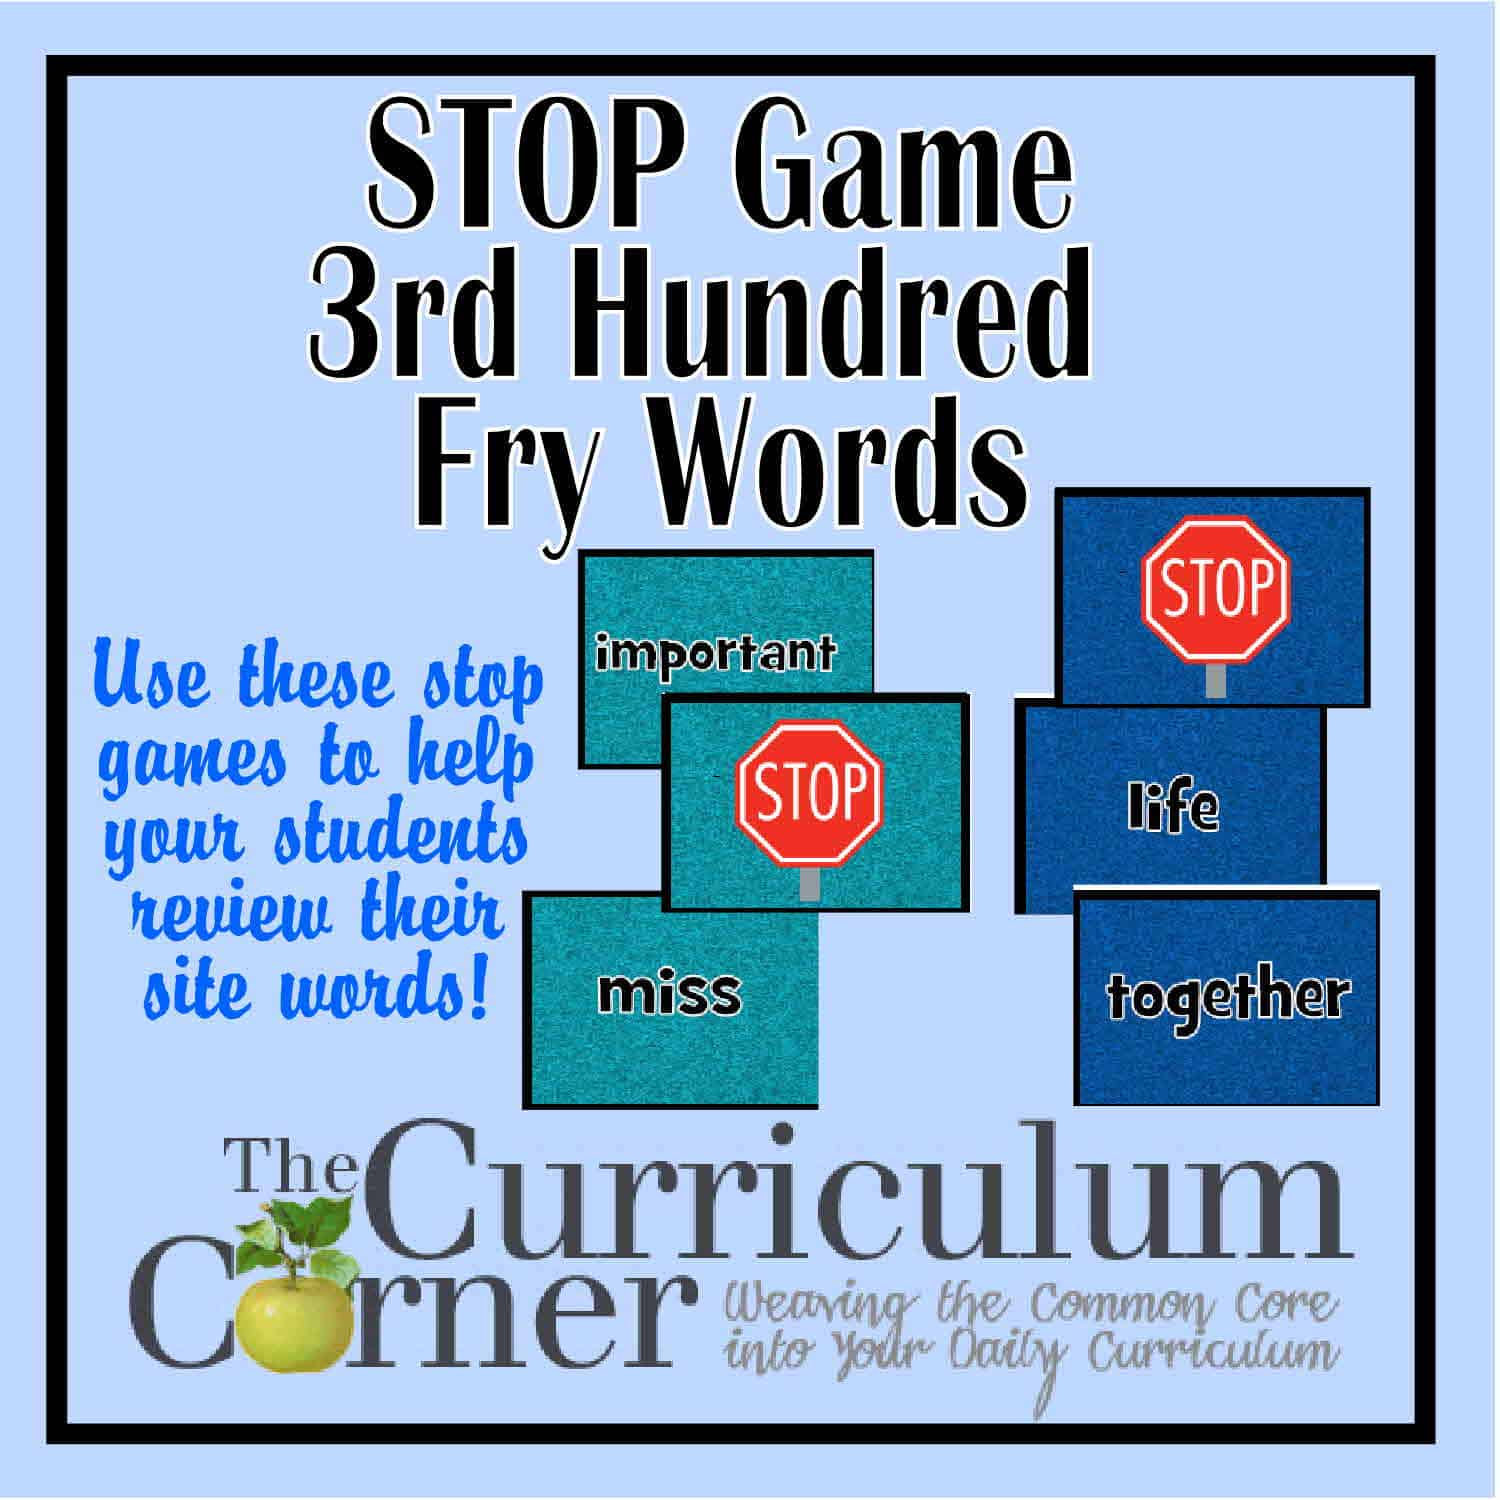 Stop Game – 3rd Hundred Fry Words